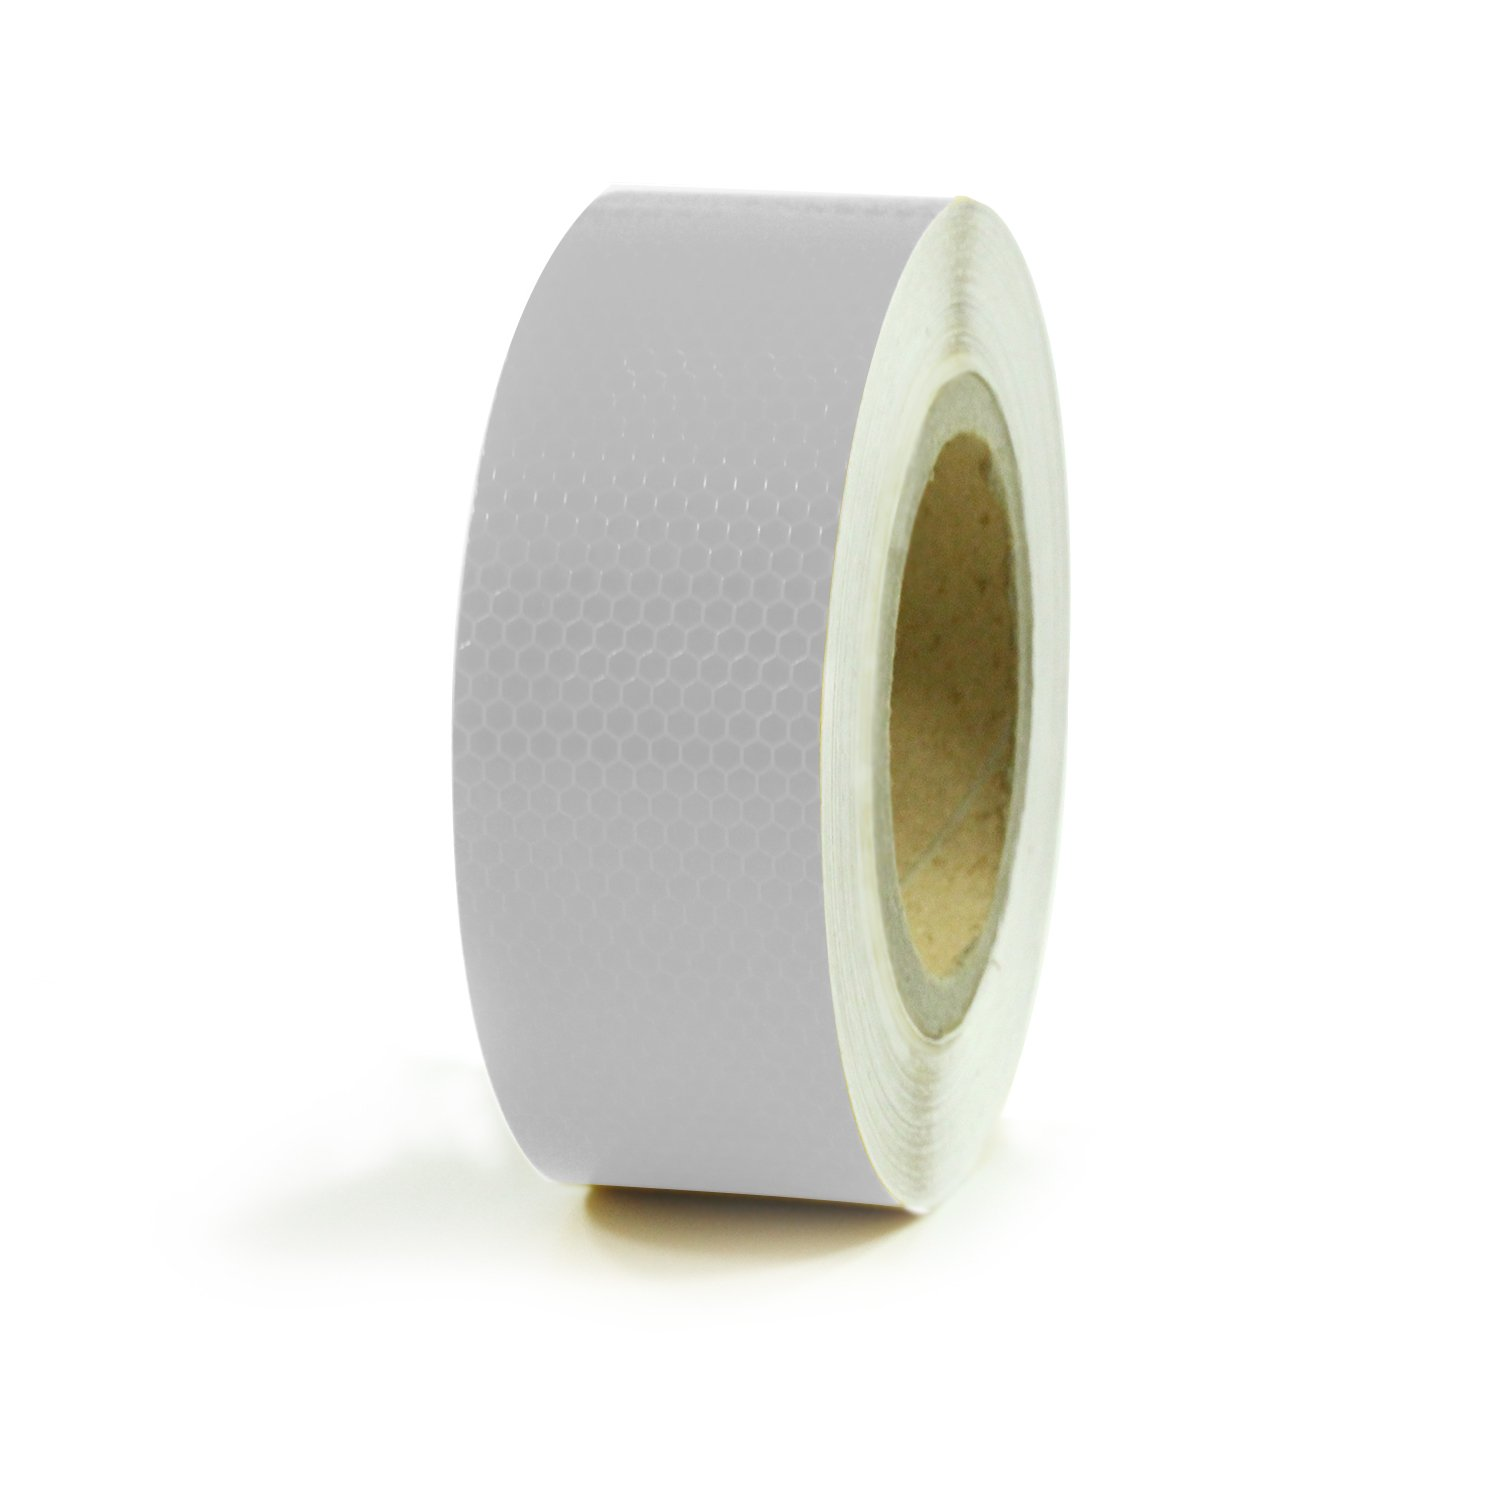 Abrams 2'' in x 150' ft Diamond Pattern Trailer Truck Conspicuity DOT Class 2 Reflective Safety Tape - White